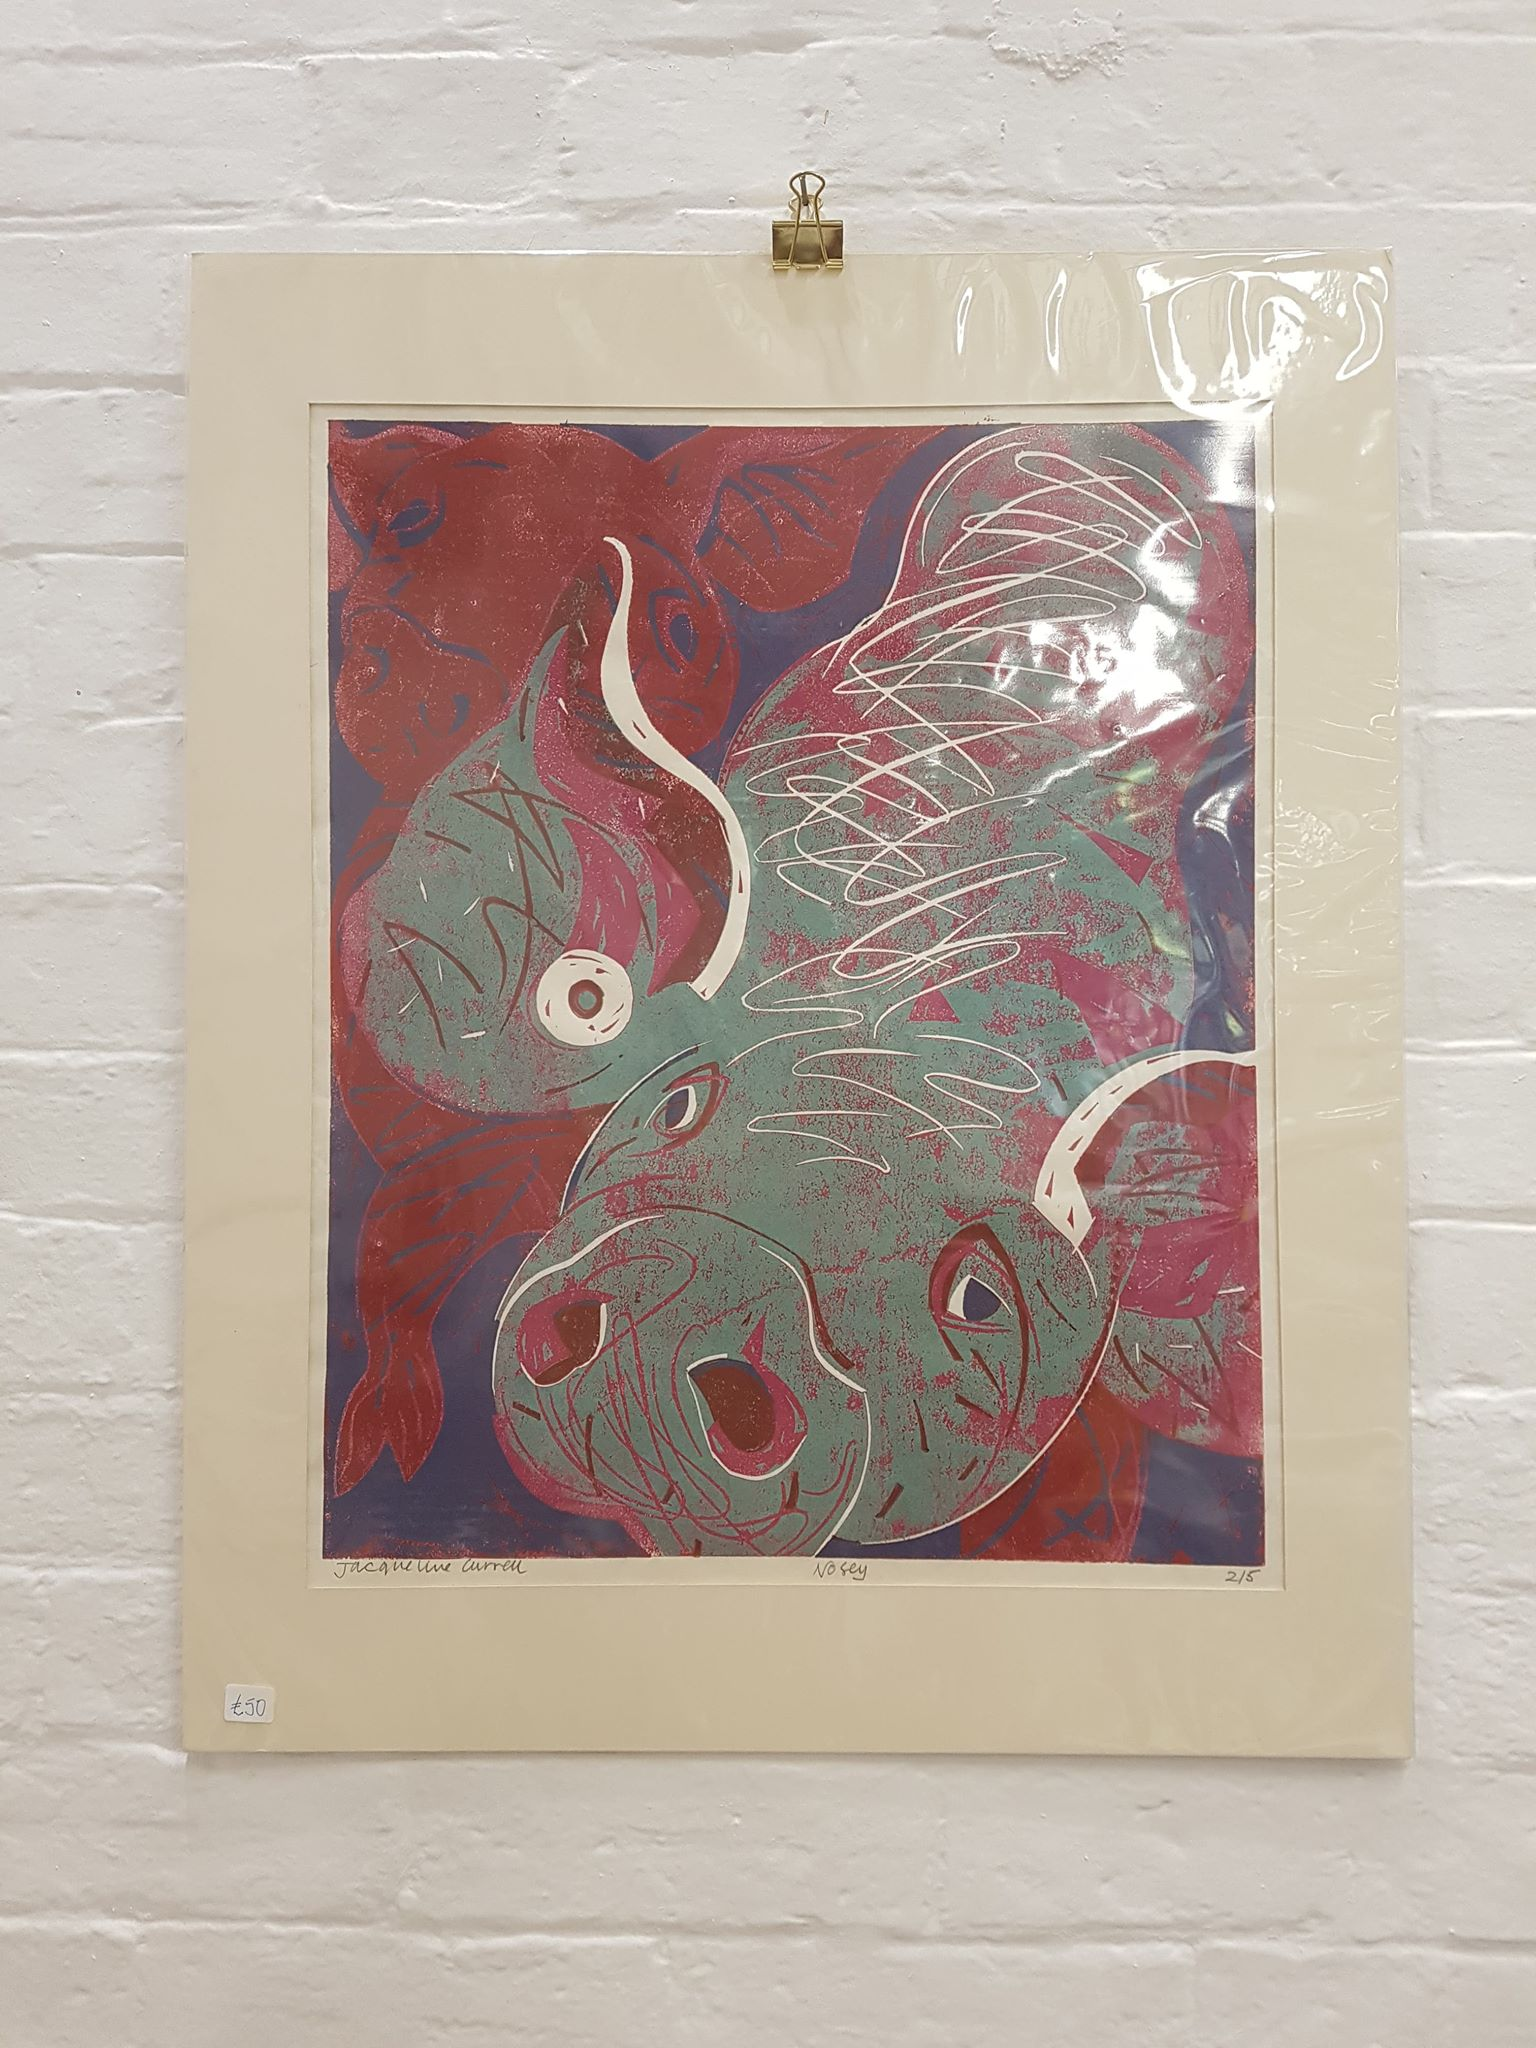 'Nosey' Print 2/5' by Jacqueline Currell £50